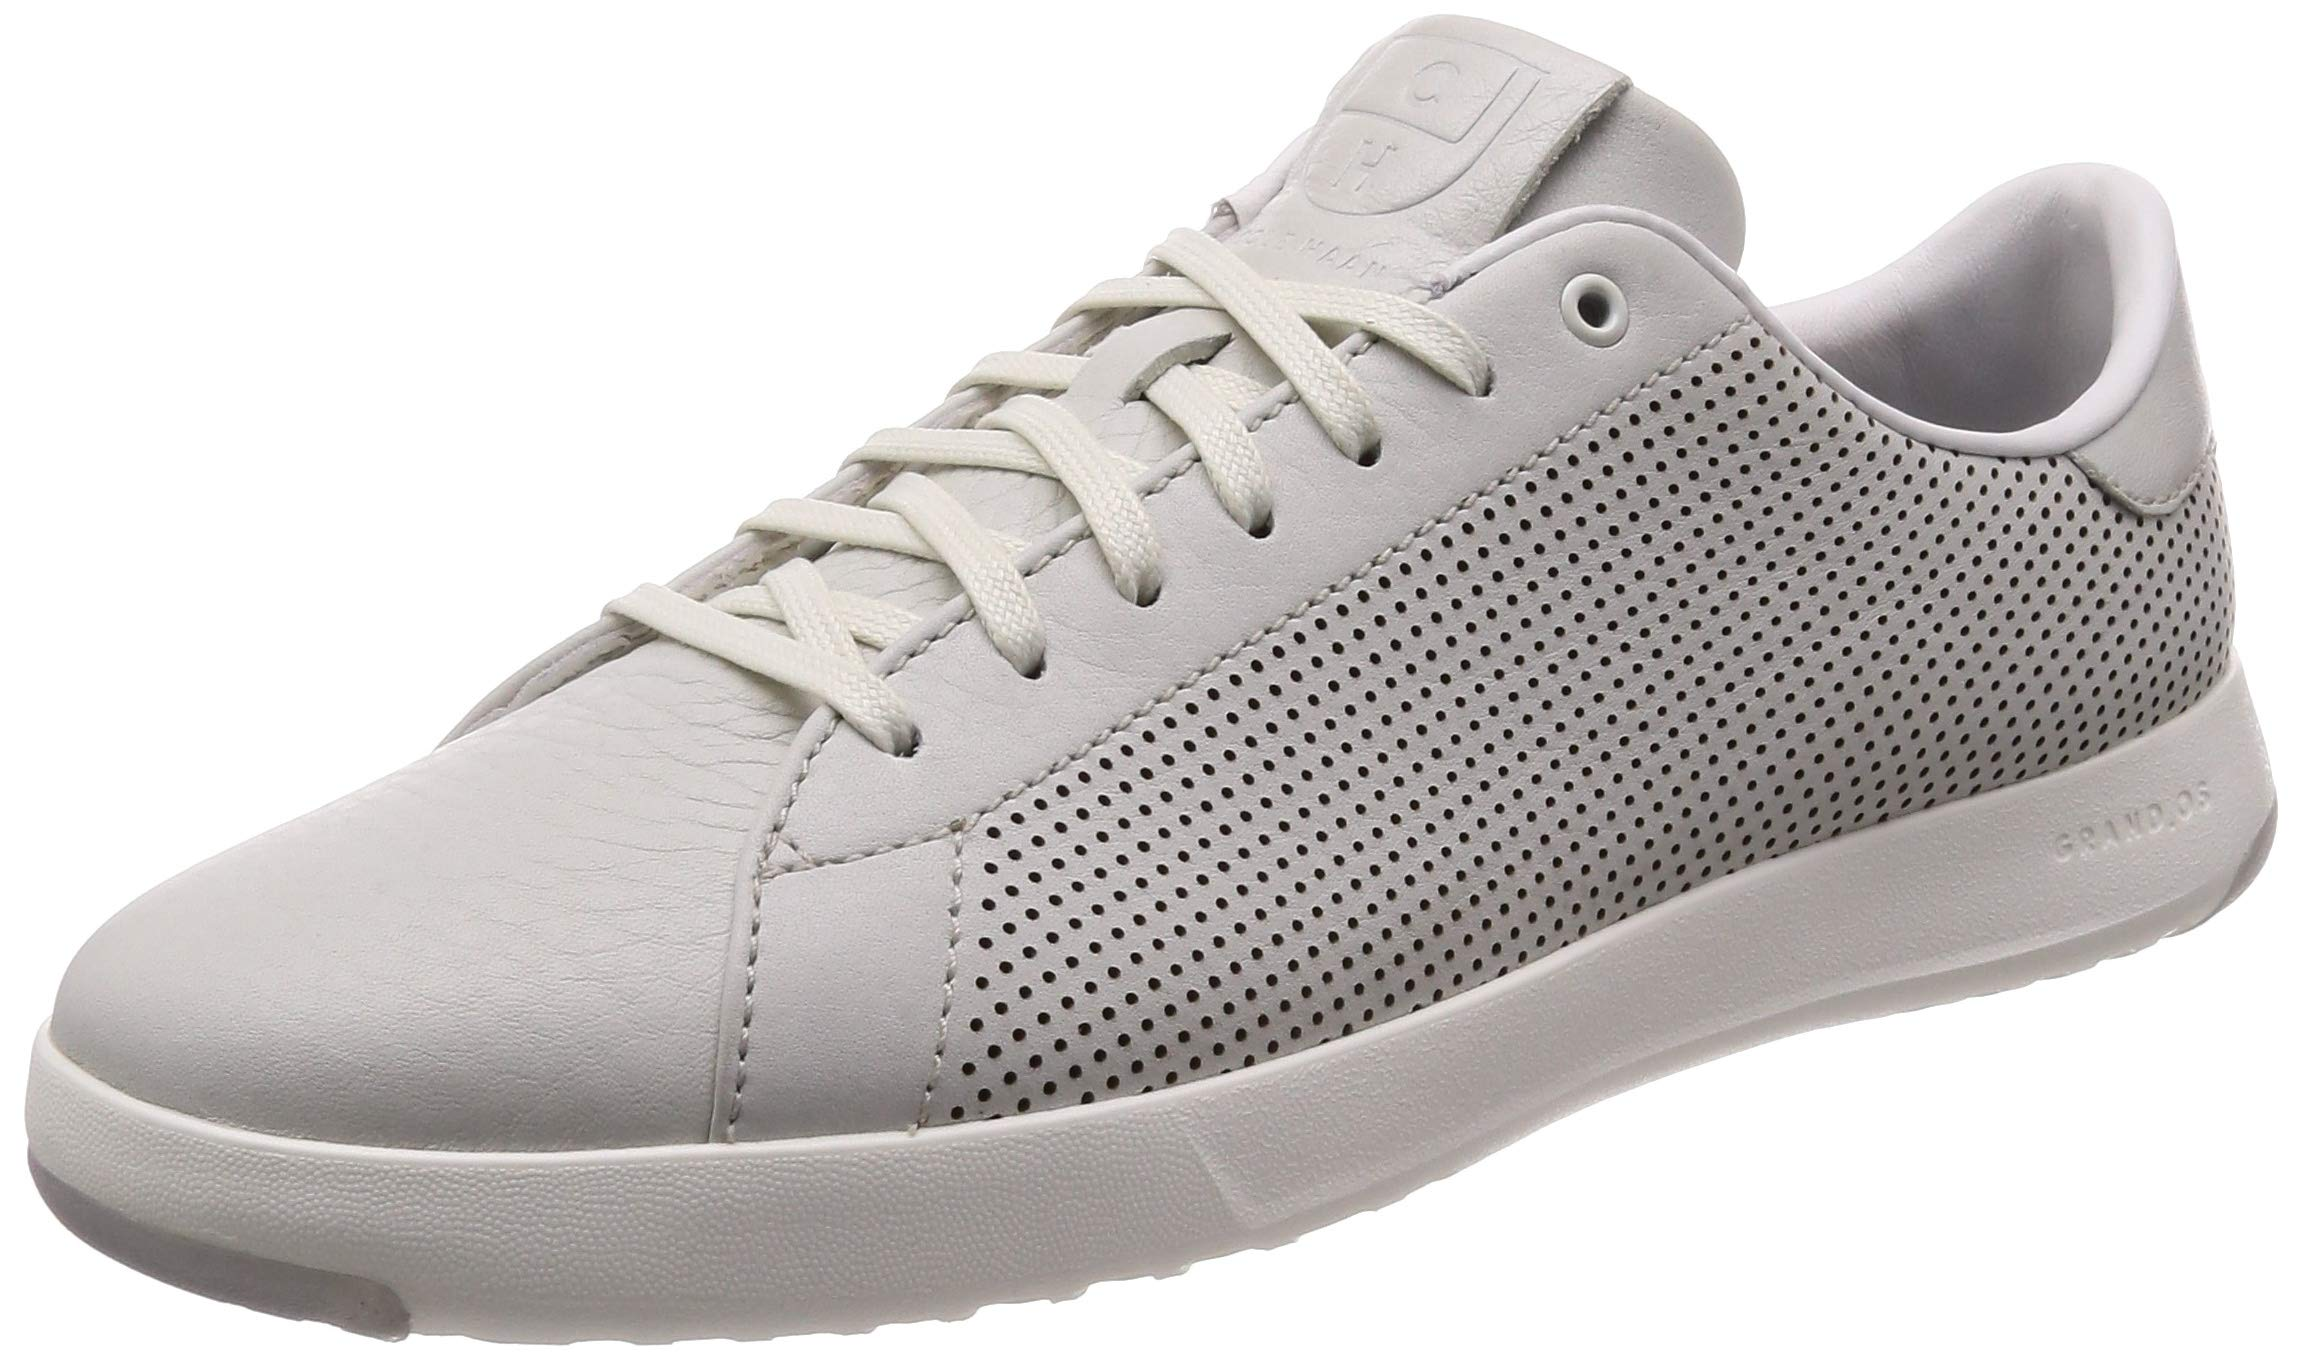 Cole Haan Mens Grandpro Tennis Sneaker 7 Chalk Tumbled Leather